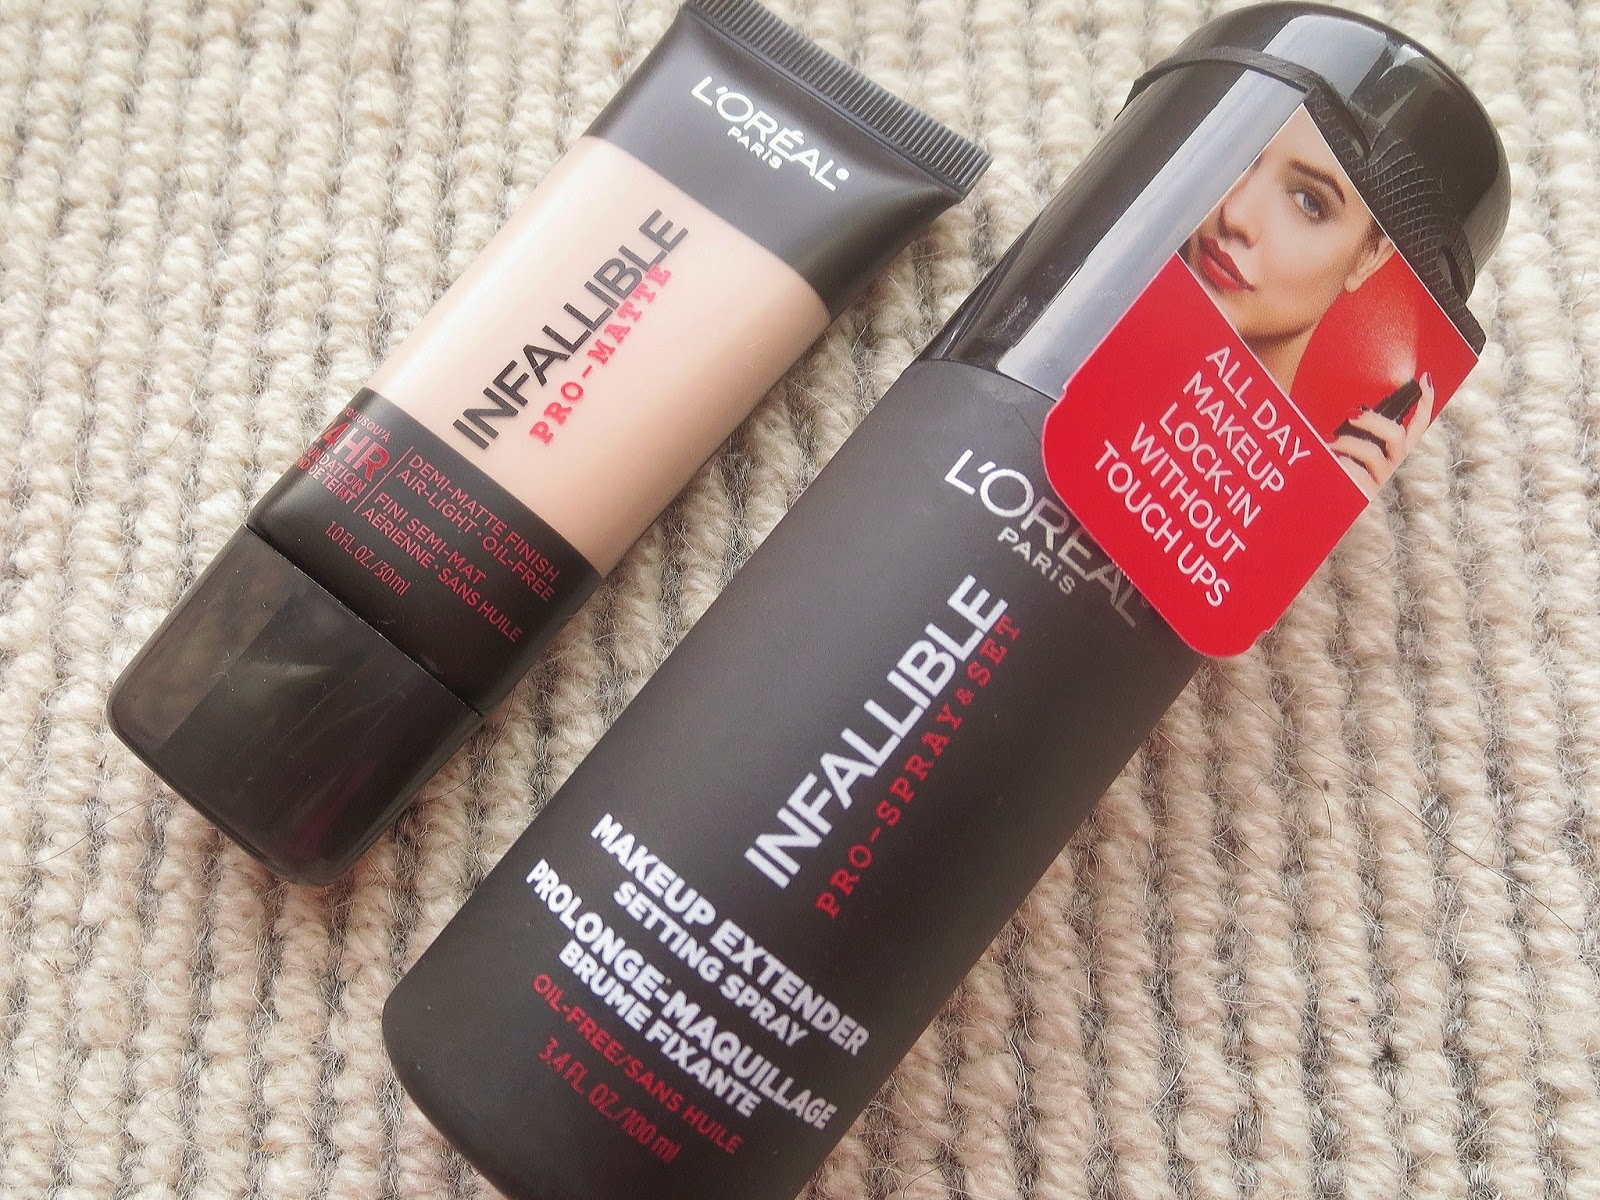 a picture of L'Oreal Infallible Pro-Matte Foundation and L'Oreal Infallible Pro-Spray & Set